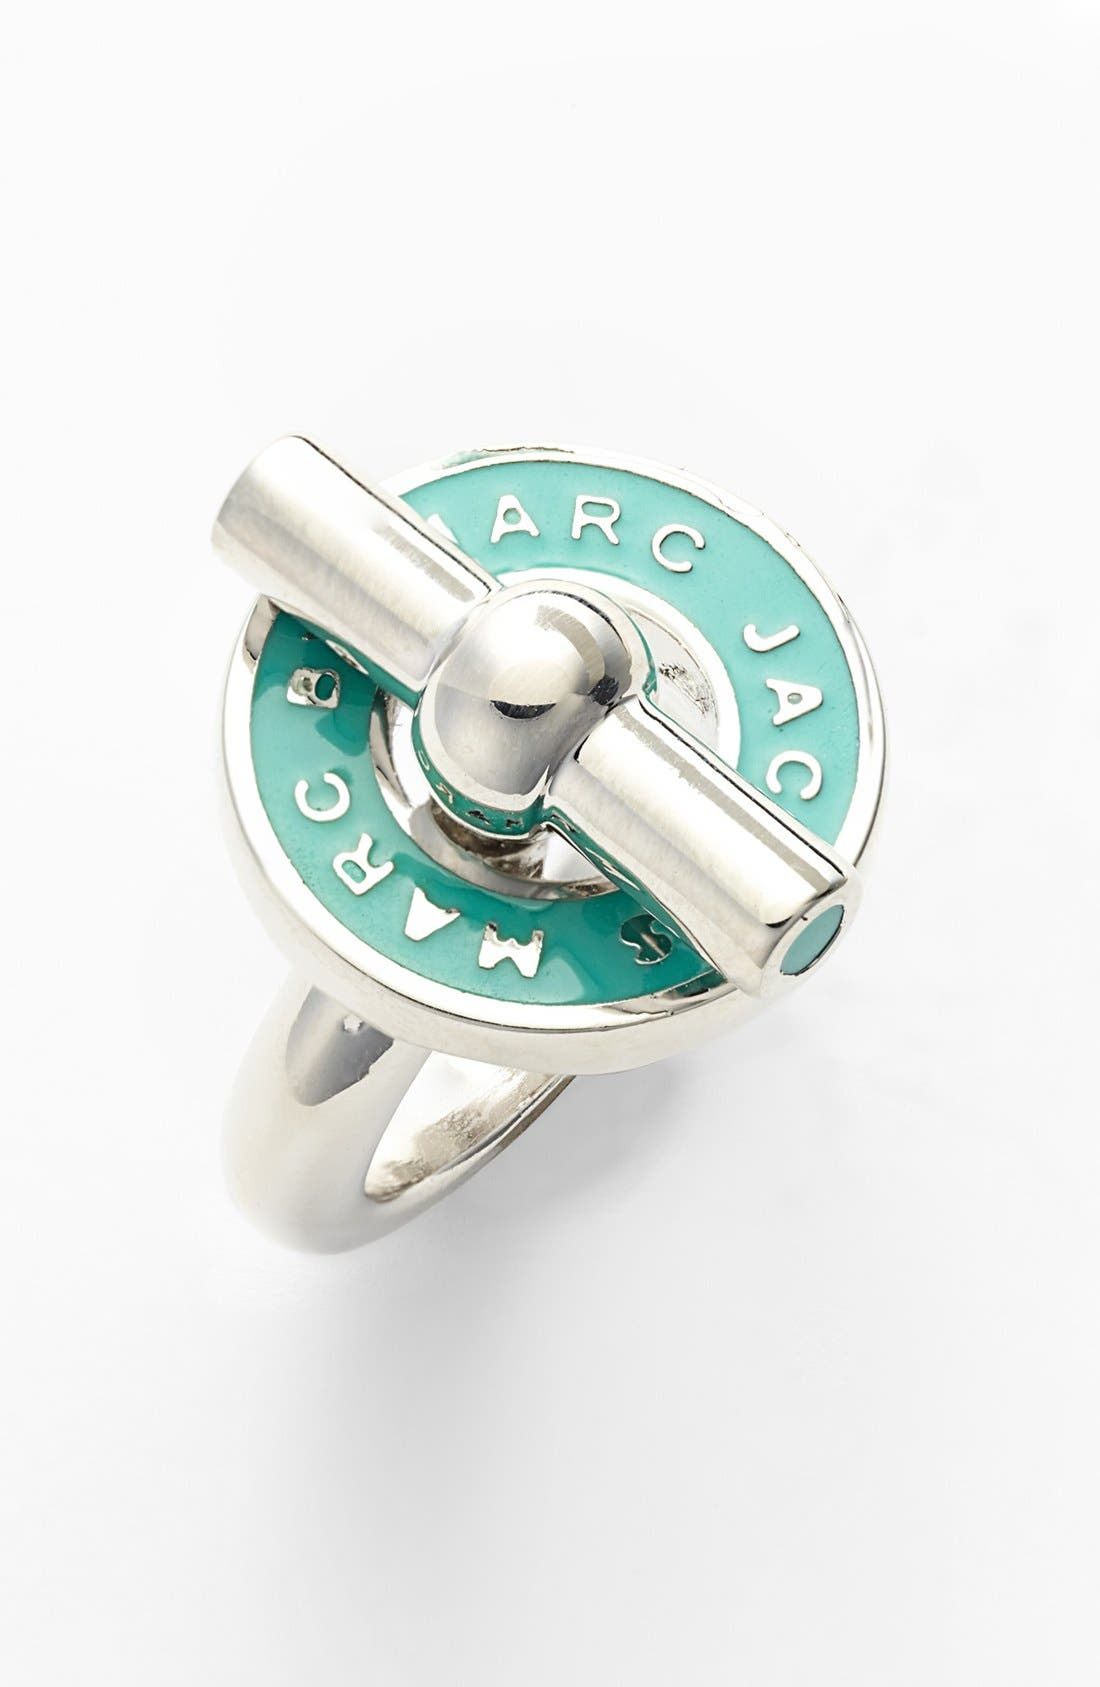 Main Image - MARC BY MARC JACOBS 'Toggles & Turnlocks' Enamel Toggle Ring